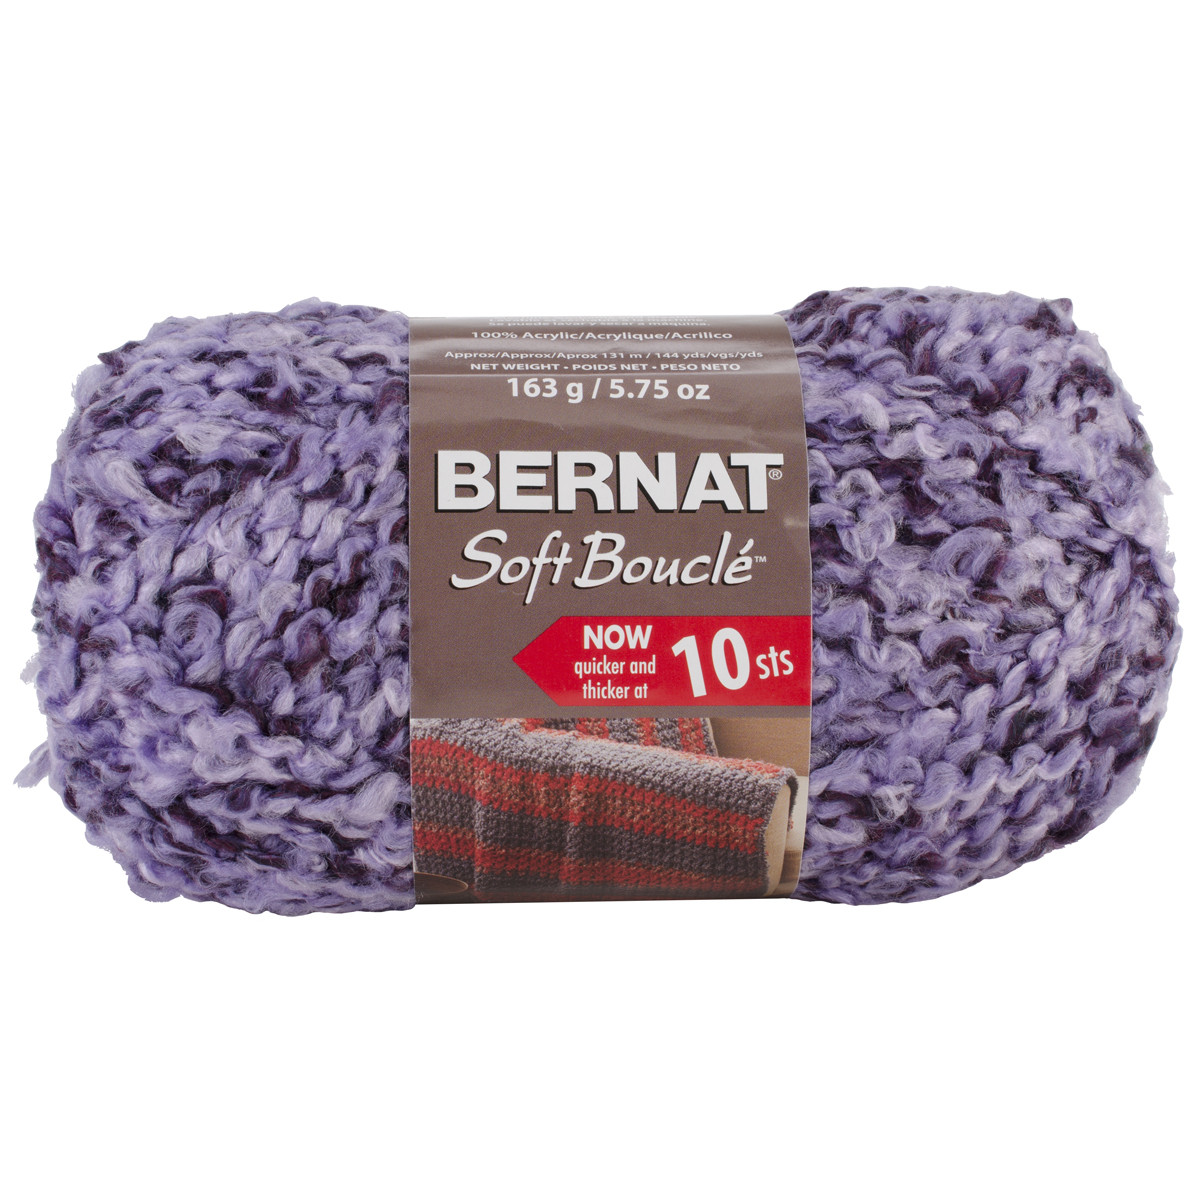 Bernat Super Bulky Yarn New Super Bulky Yarns Super Bulky Yarn Super Bulky Knitting Of Luxury 41 Ideas Bernat Super Bulky Yarn